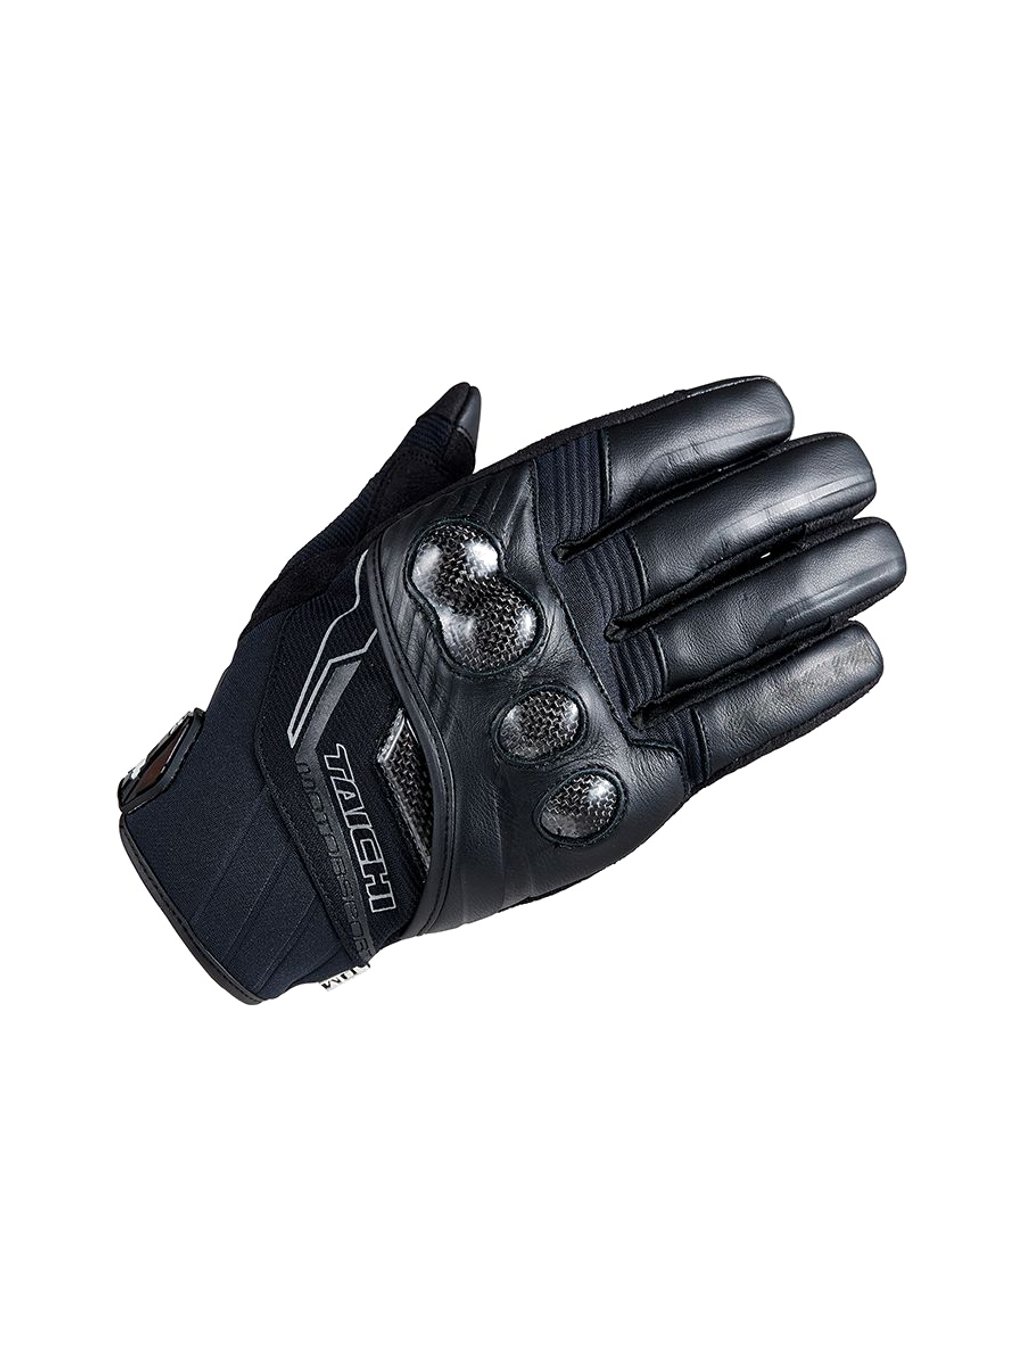 39 RS TAICHI RST636 CARBON WINTER GLOVE black.png